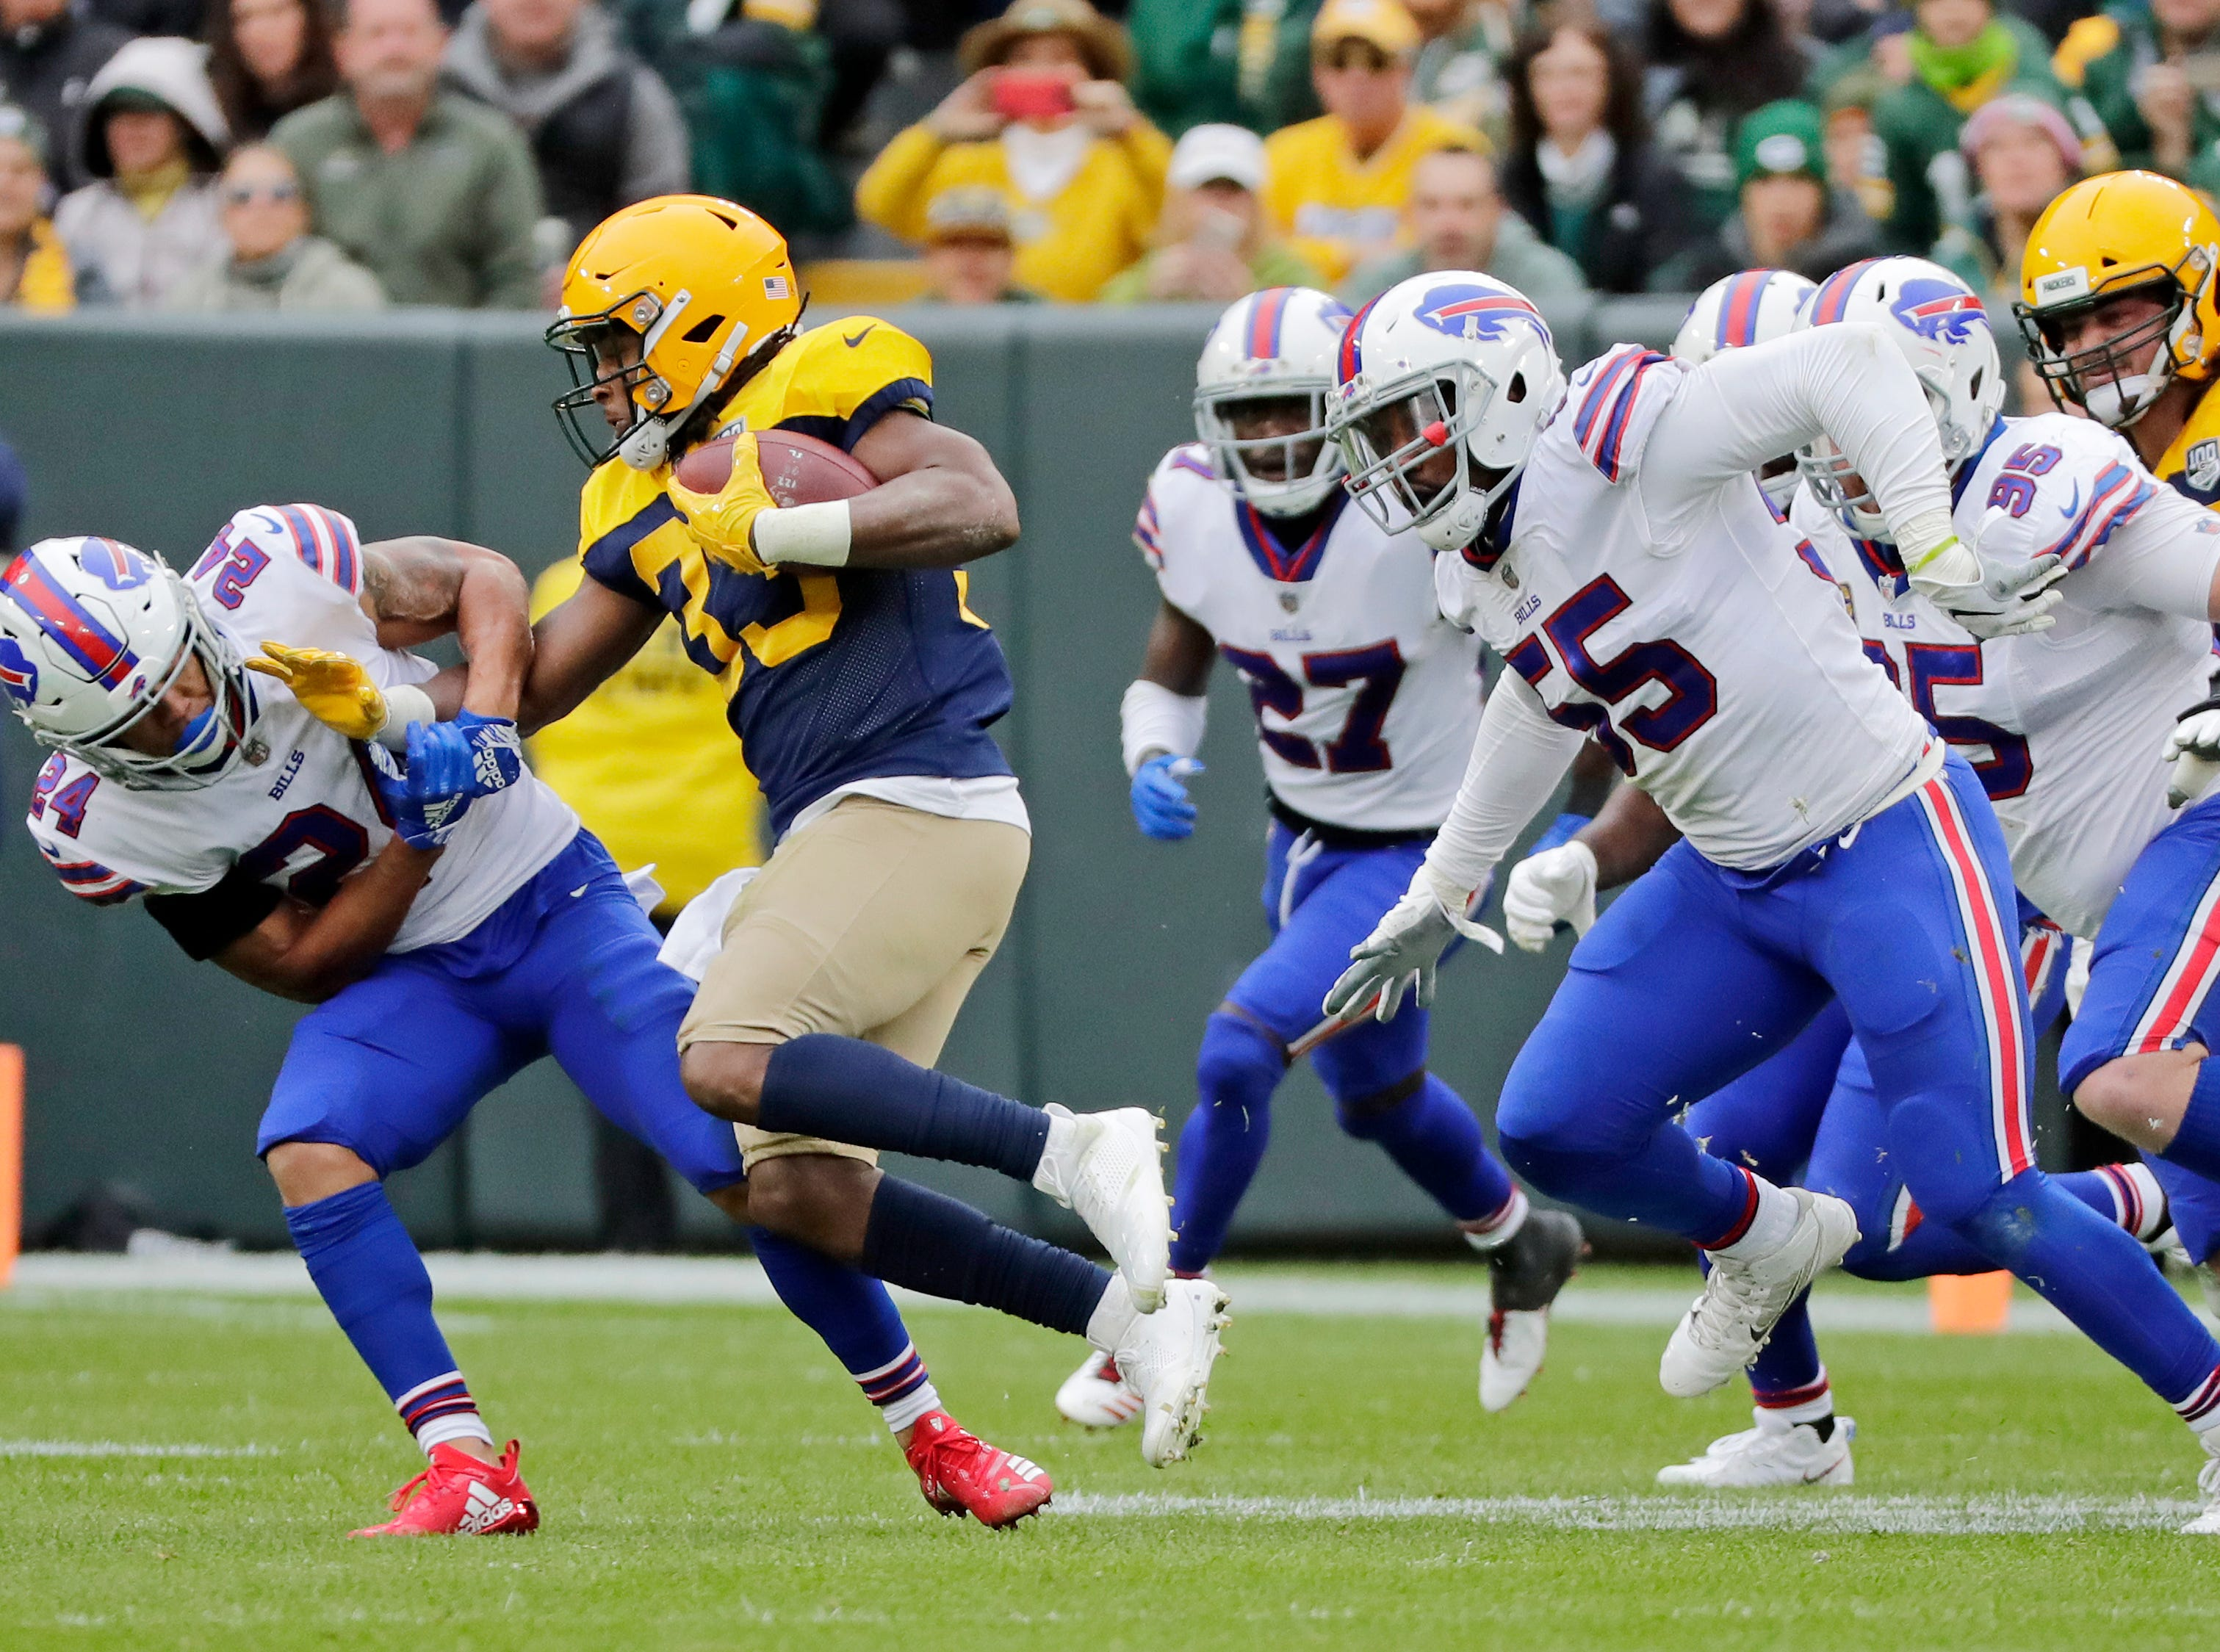 Green Bay Packers running back Aaron Jones (33) rushes in the second quarter against the Buffalo Bills at Lambeau Field on Sunday, September 30, 2018 in Green Bay, Wis.Adam Wesley/USA TODAY NETWORK-Wisconsin